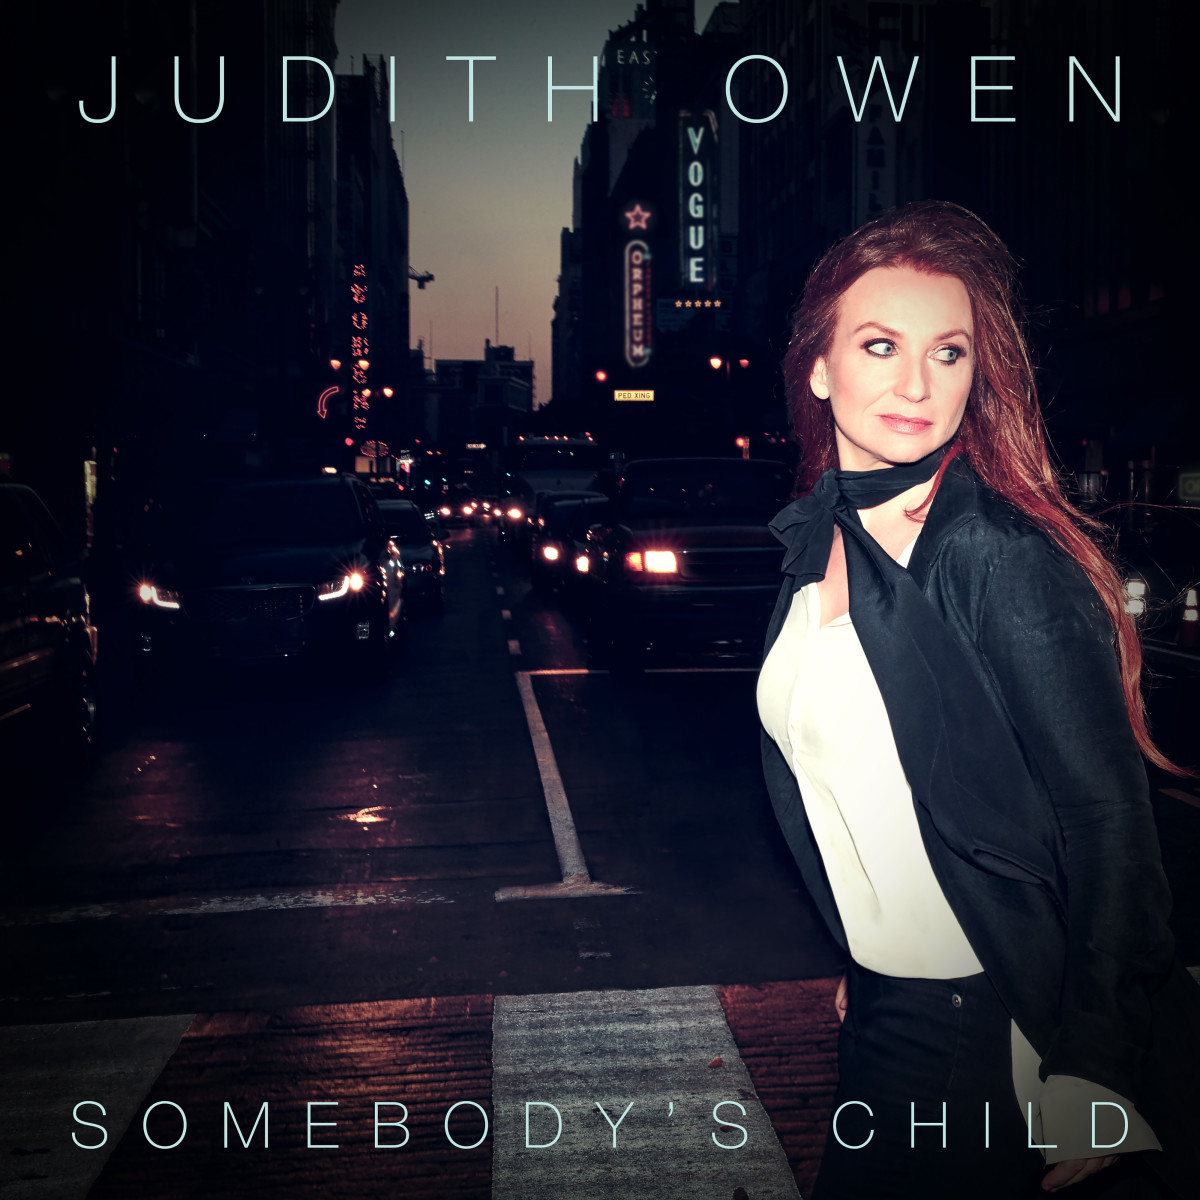 judith-owen-somebodys-child